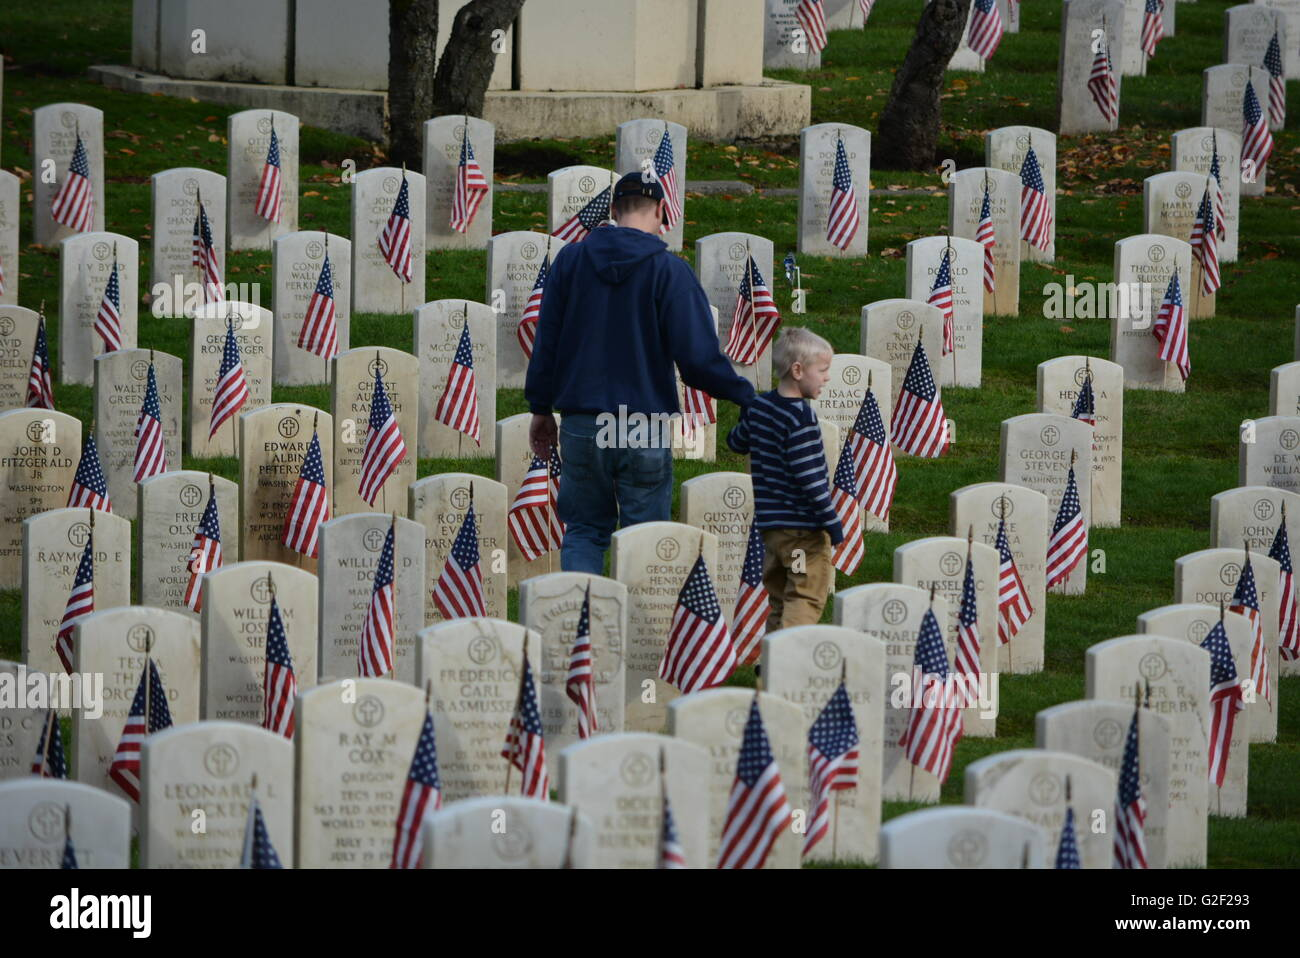 Remembering American Hero's - Stock Image